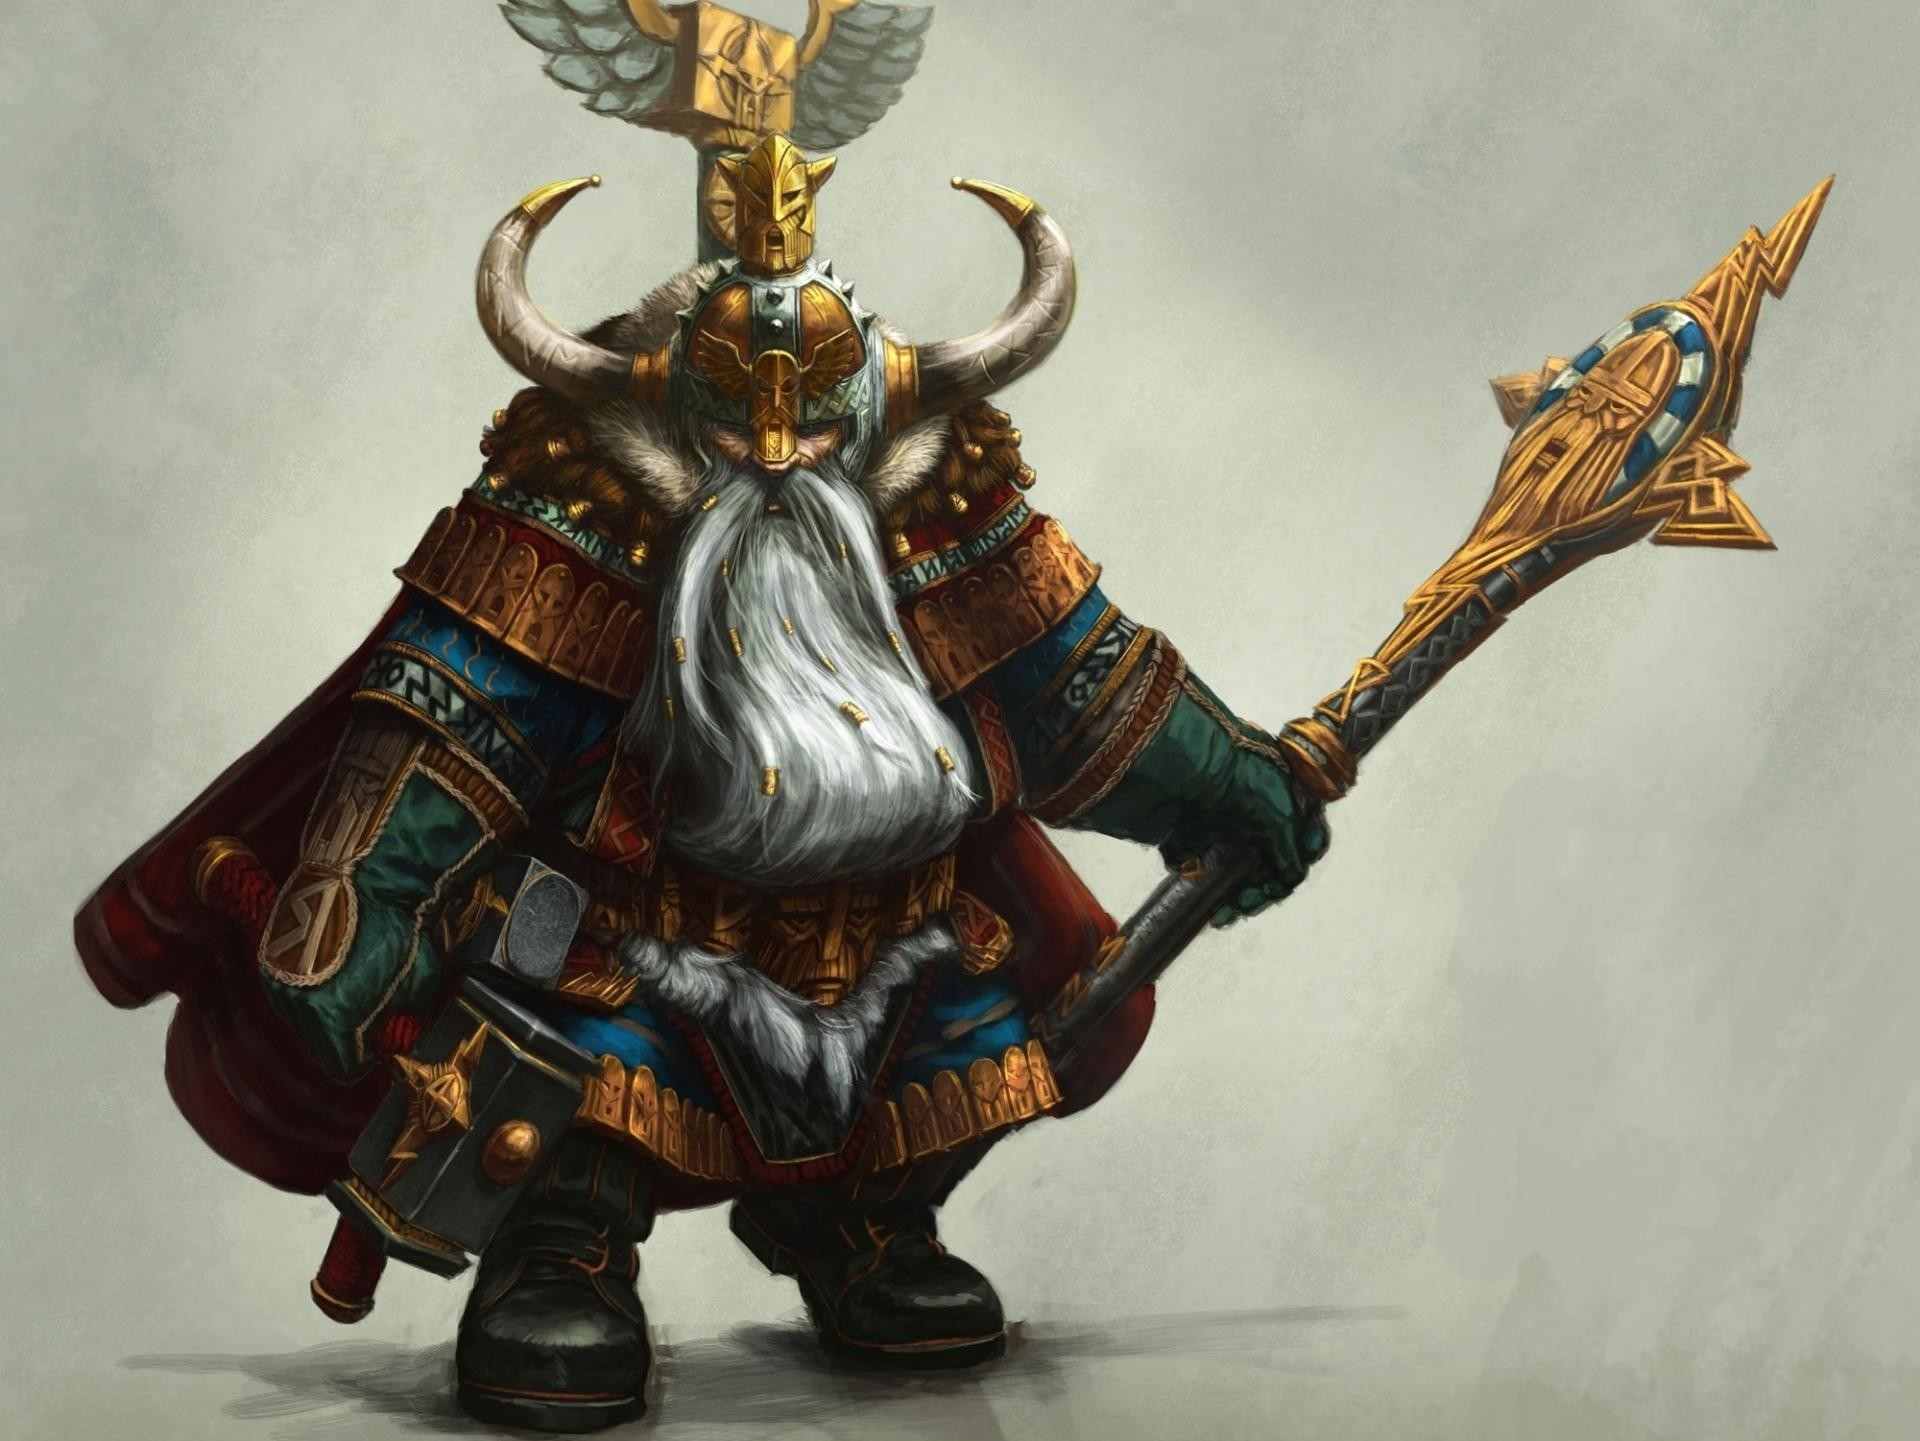 Res: 1920x1441, Dwarf wallpapers HD quality